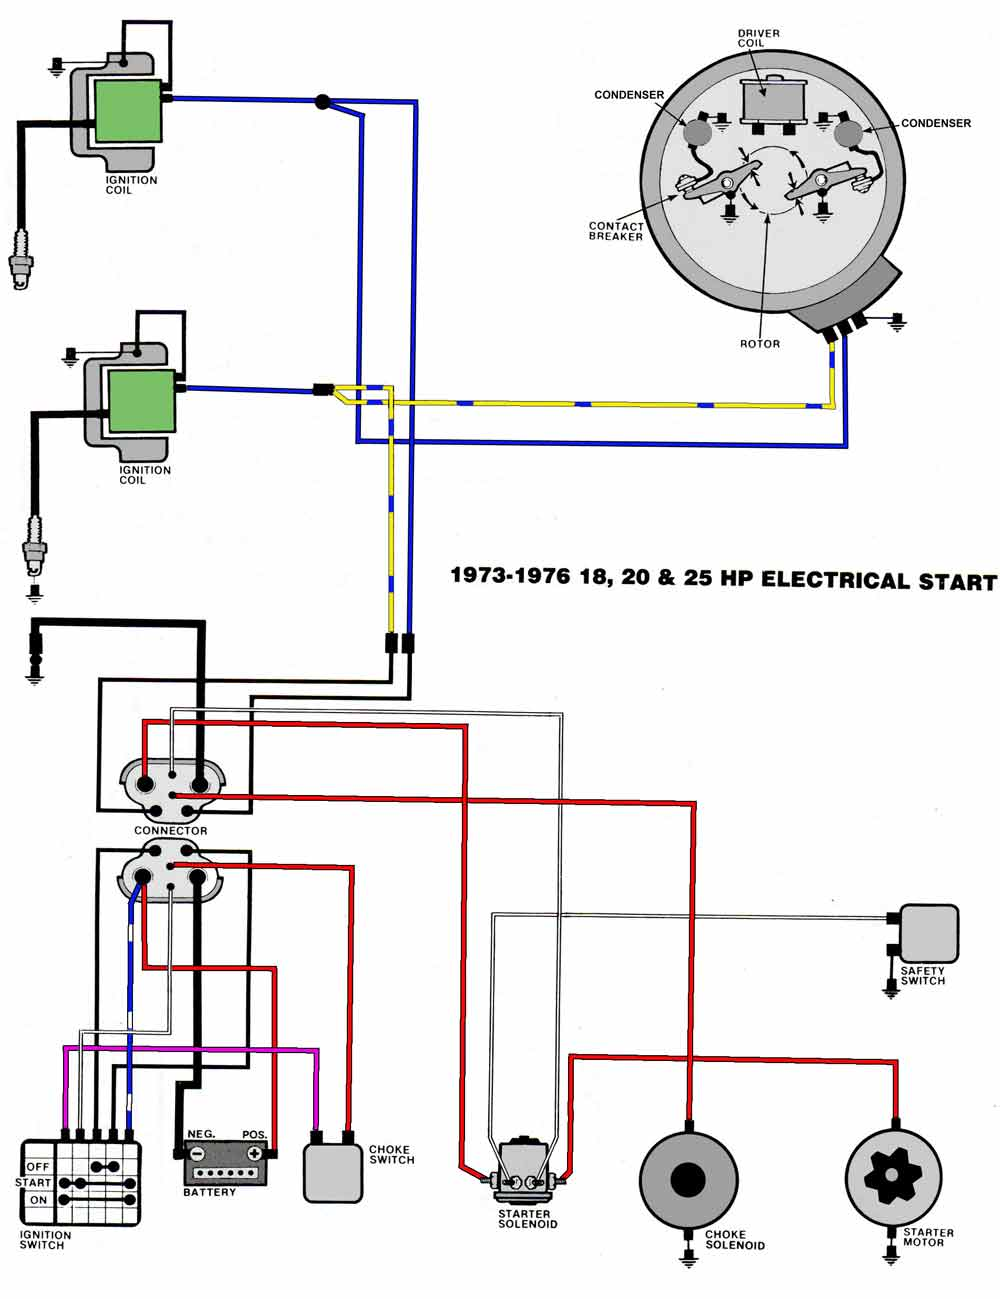 25 hp evinrude wiring diagram daily update wiring diagram Evinrude Outboard Wiring Diagram